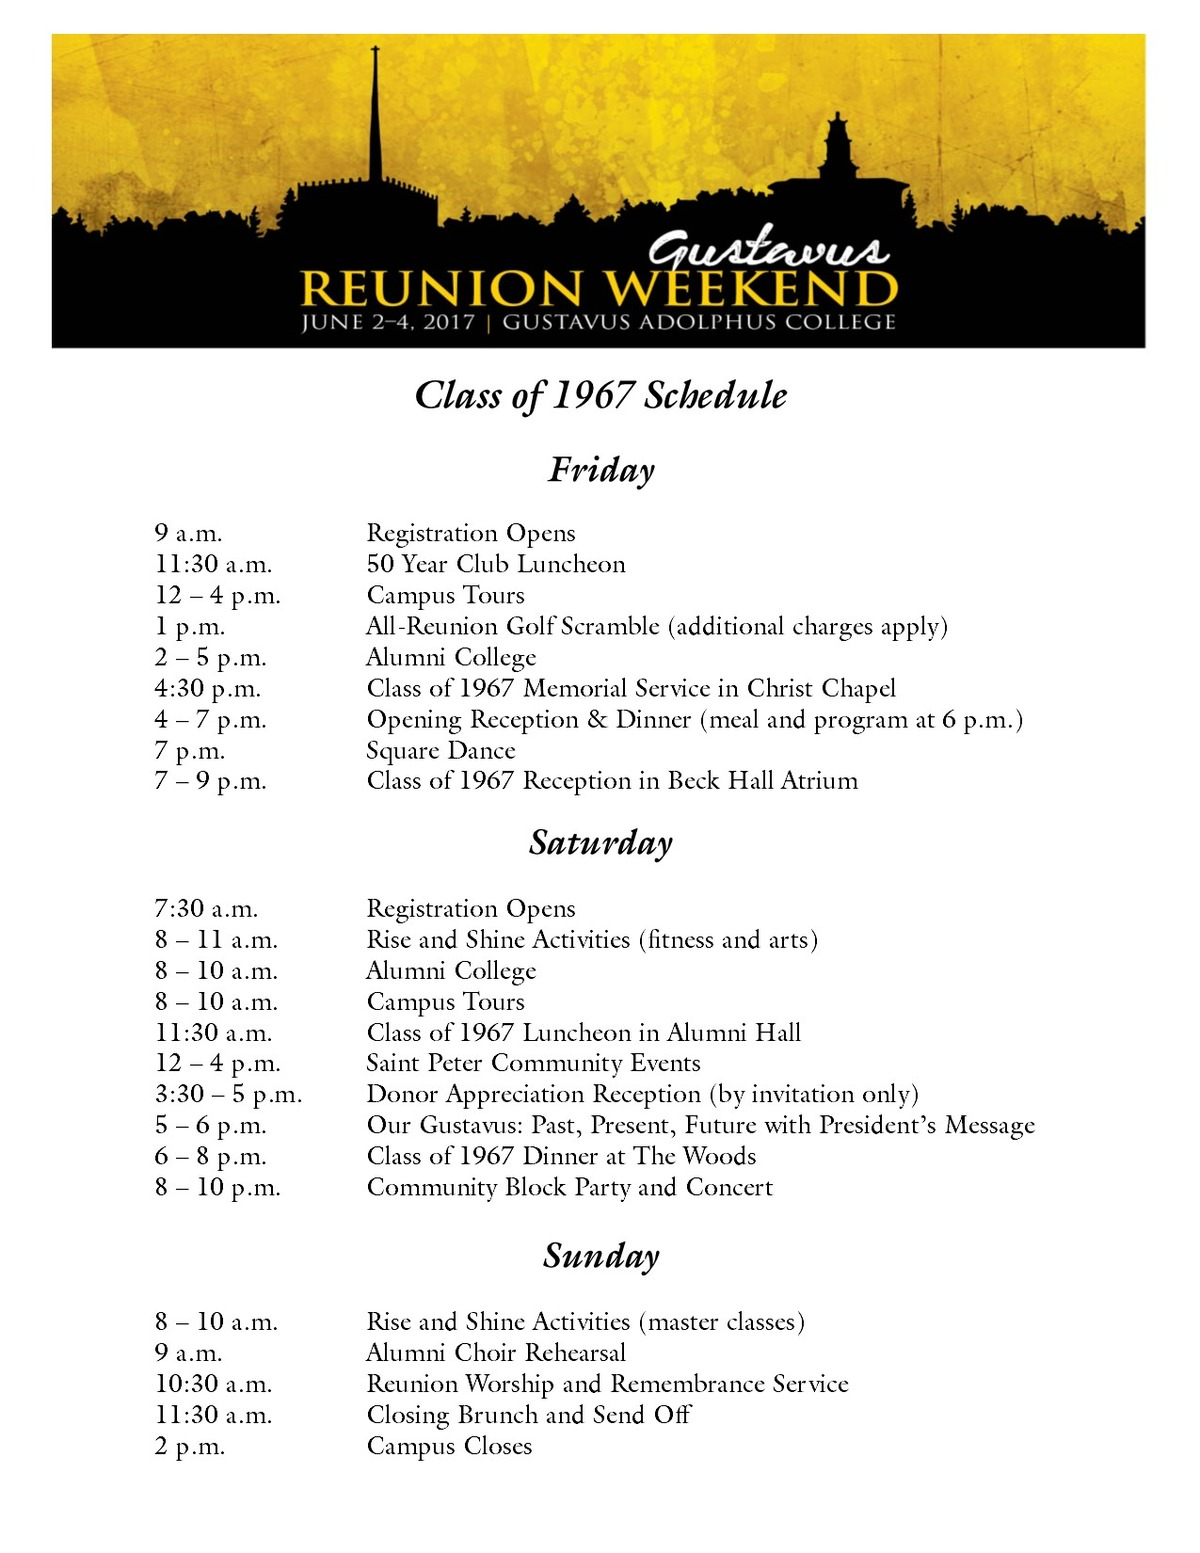 Class of 1967 Reunion Weekend Schedule